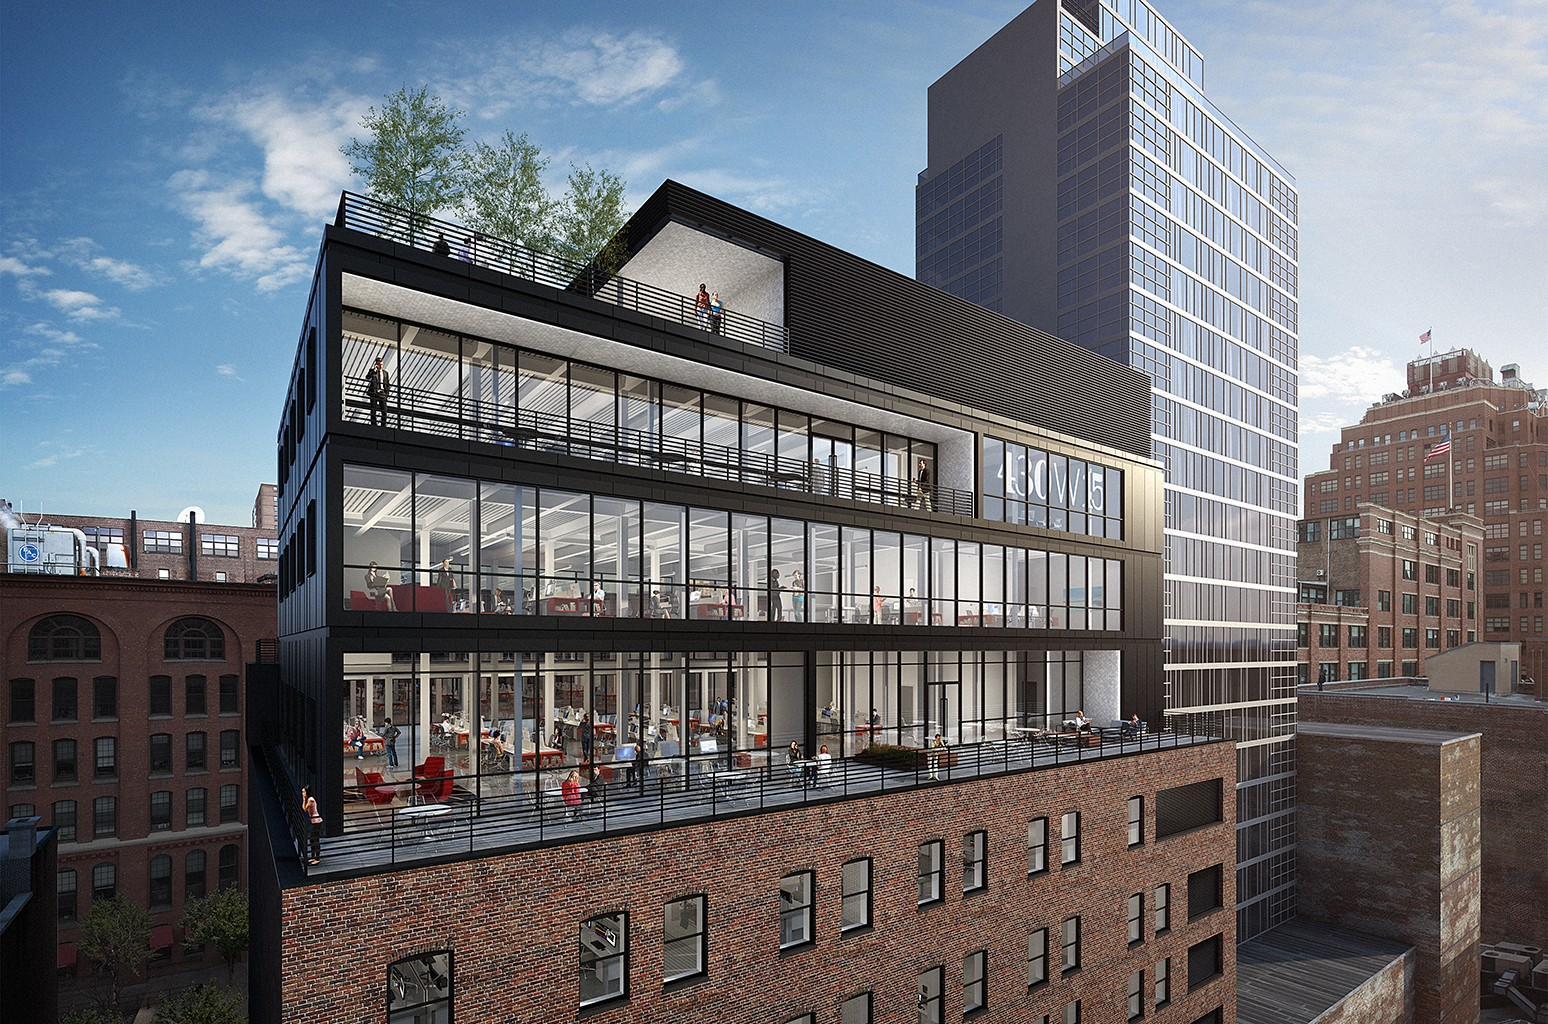 A rendering of the new Live Nation headquarters